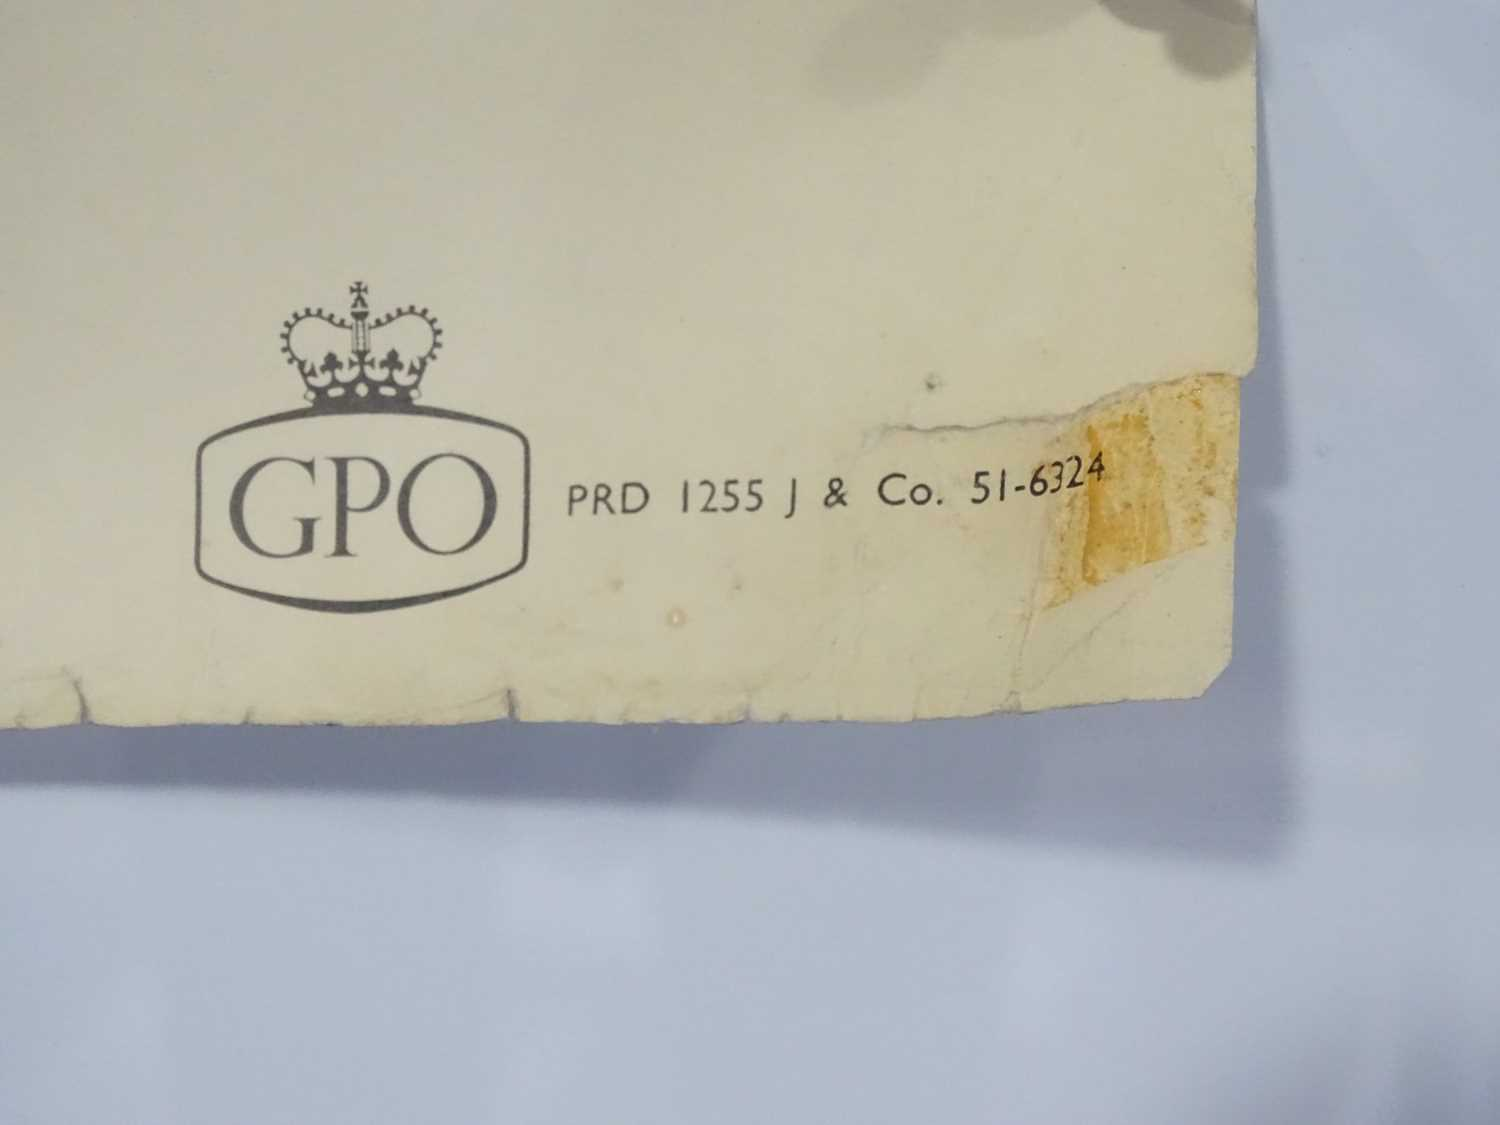 GPO (Post Office) circa 1962 - 'Keeping in Touch' - 'The Post Office in the Country' - Landscape - Image 3 of 3